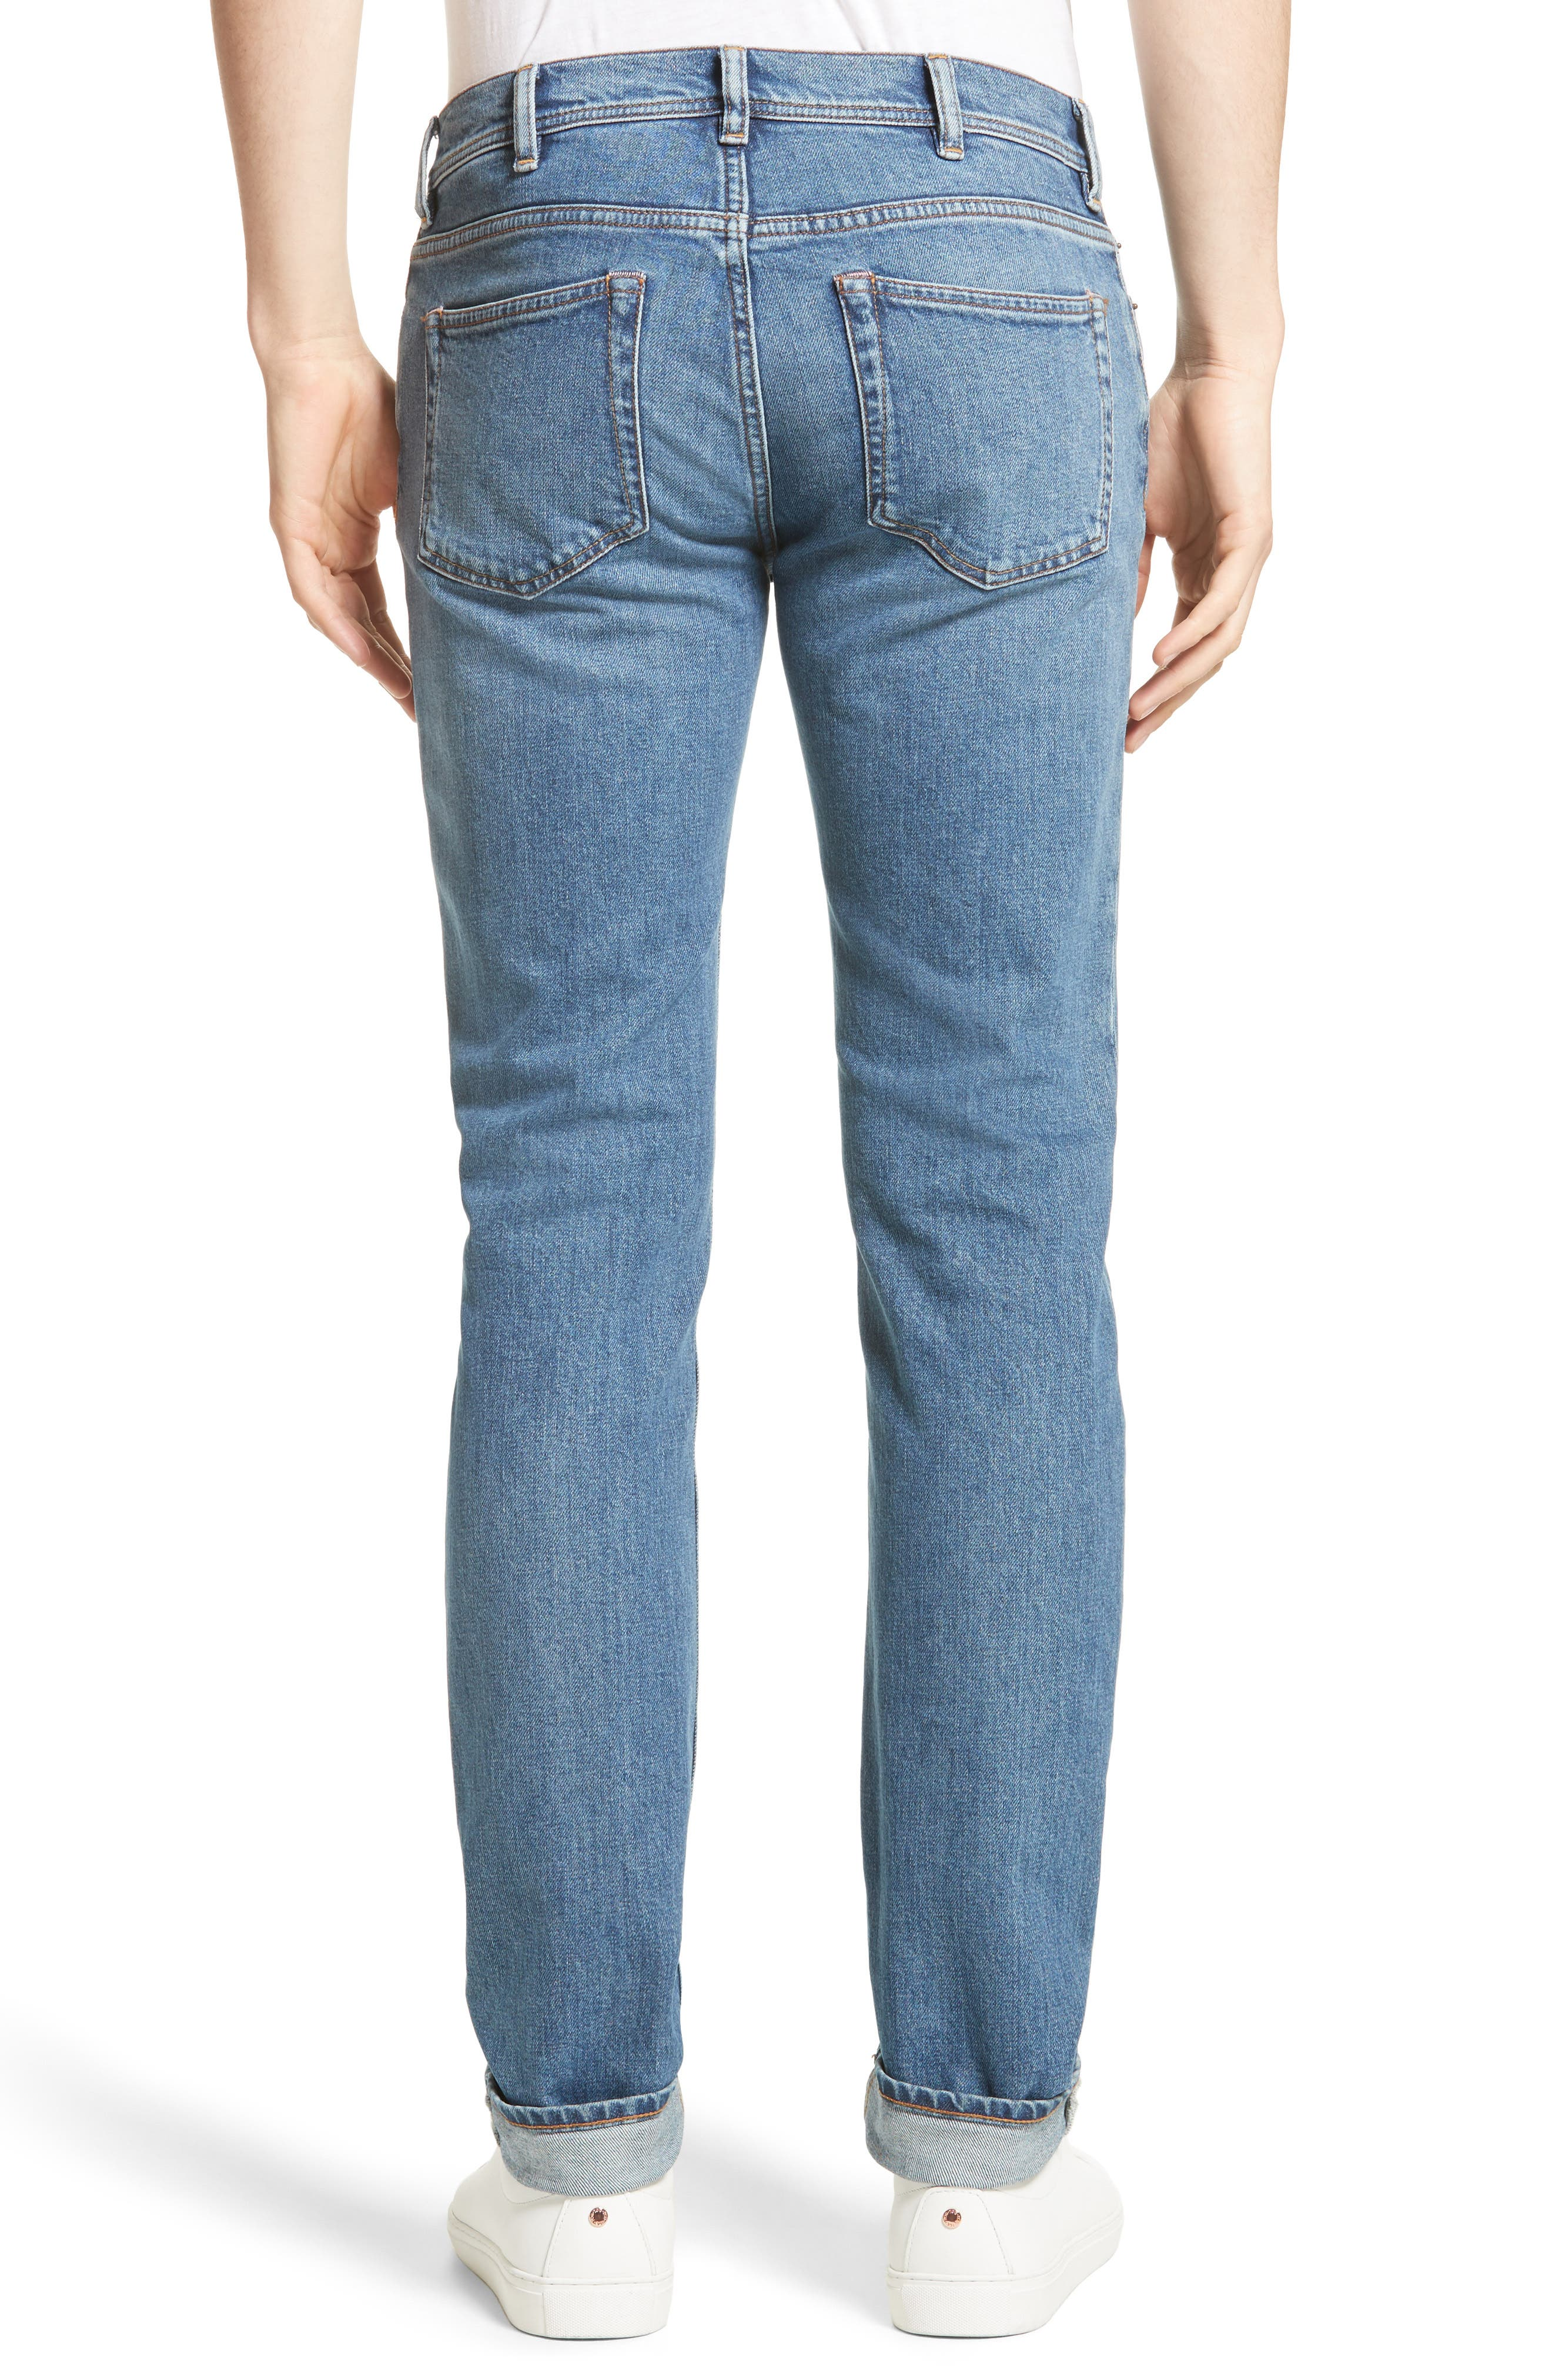 North Skinny Jeans,                             Alternate thumbnail 2, color,                             Mid Blue